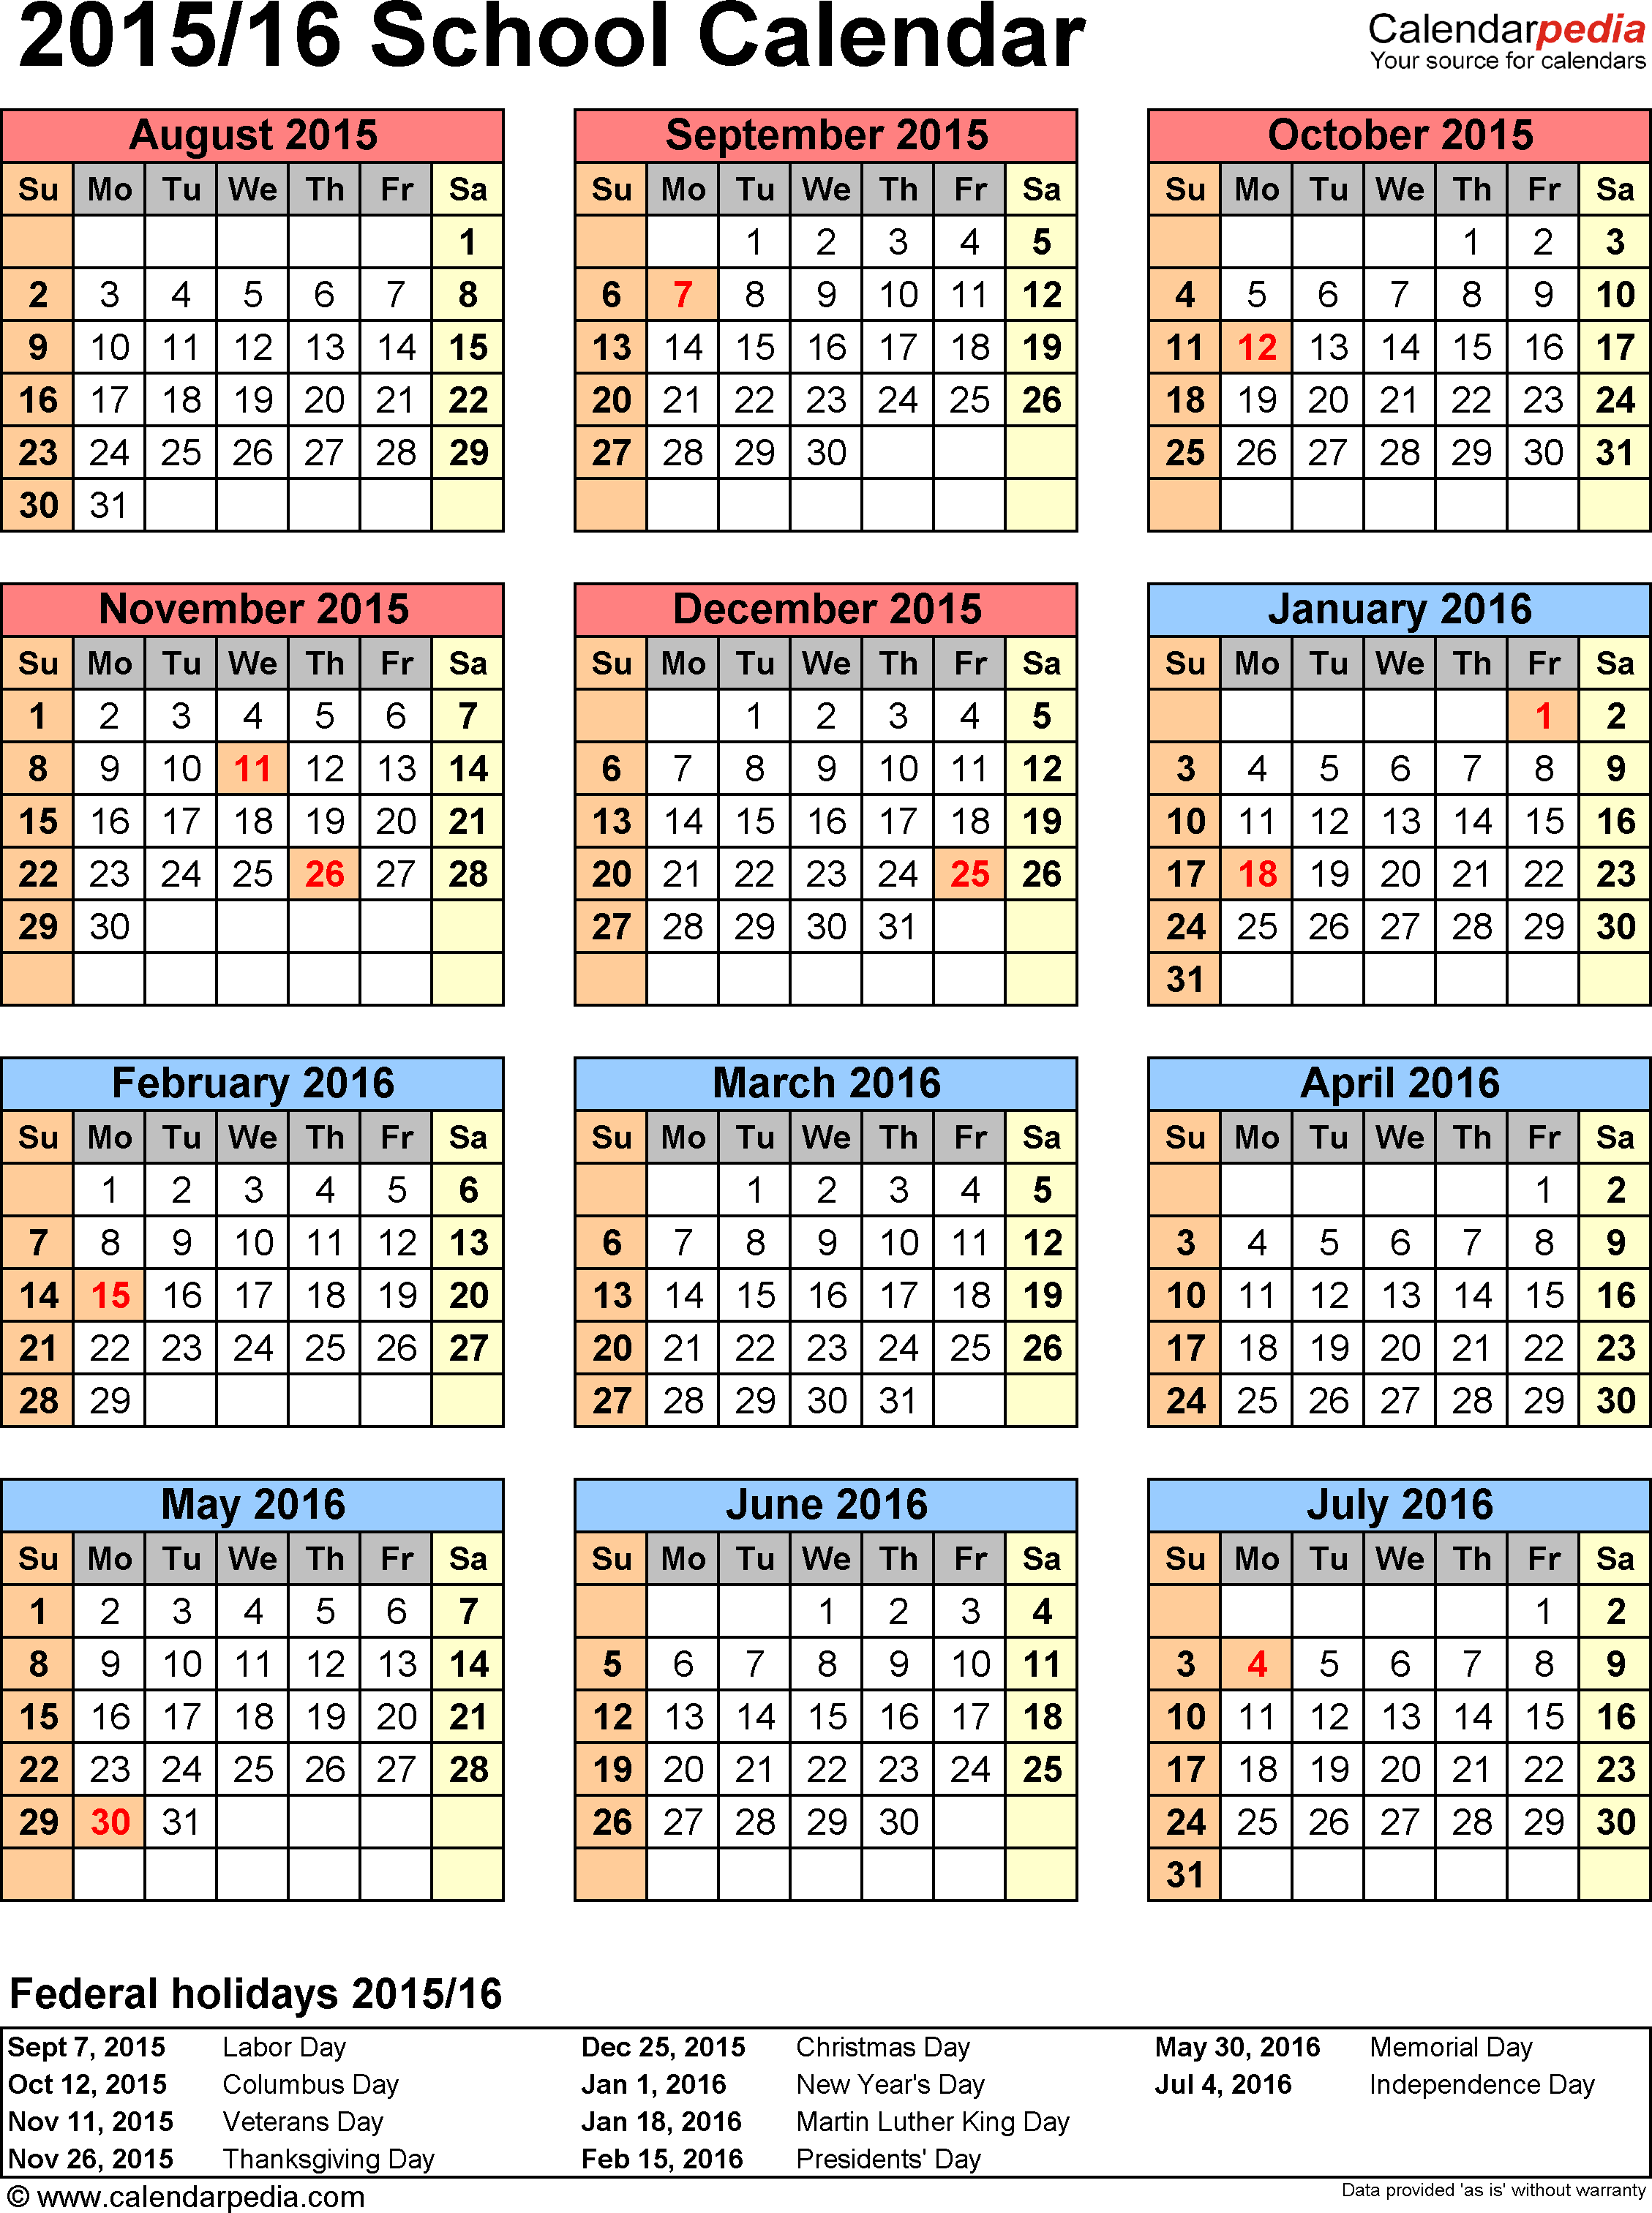 School Calendars 2015 2016 As Free Printable Word Templates